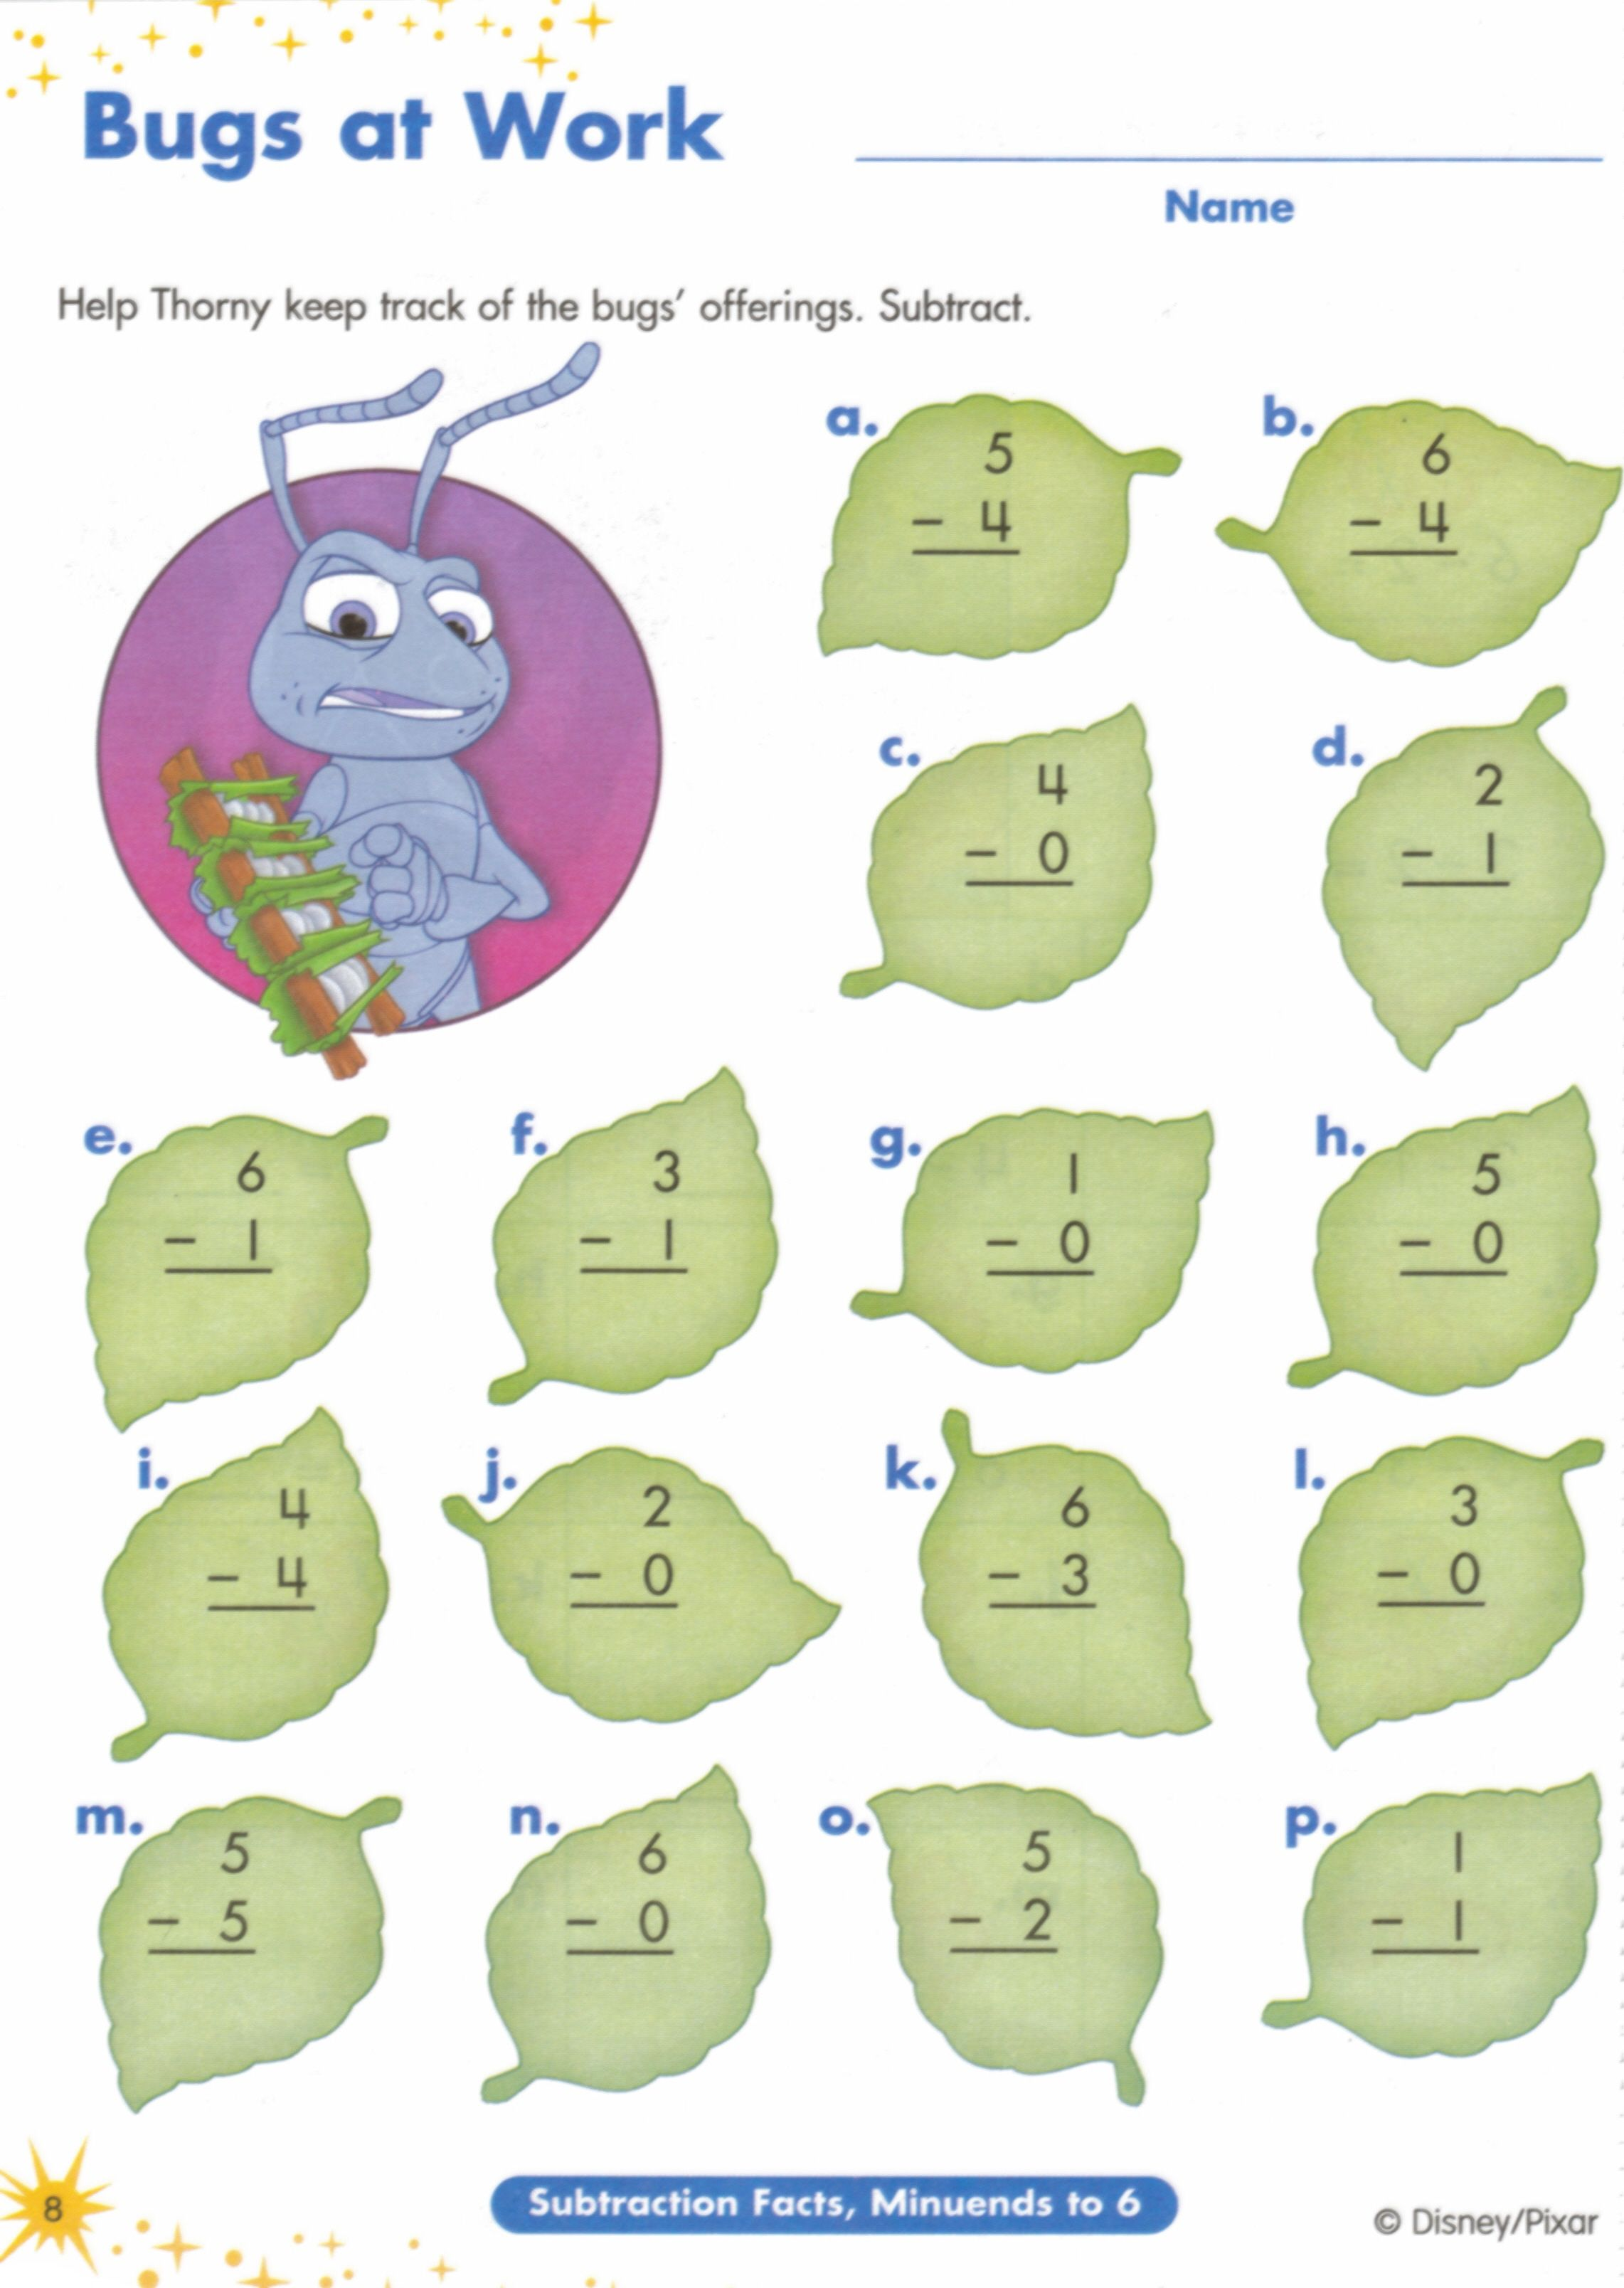 Weirdmailus  Gorgeous  Images About Worksheets On Pinterest  Fun Facts For Kids  With Fair  Images About Worksheets On Pinterest  Fun Facts For Kids Earth Day Worksheets And Jungles With Amazing Velocity Worksheet Also Area Of Circle Worksheet In Addition Metals Nonmetals And Metalloids Worksheet And Division Worksheets Th Grade As Well As The Respiratory System Worksheet Answers Additionally Print Only The Selected Portion Of This Worksheet From Pinterestcom With Weirdmailus  Fair  Images About Worksheets On Pinterest  Fun Facts For Kids  With Amazing  Images About Worksheets On Pinterest  Fun Facts For Kids Earth Day Worksheets And Jungles And Gorgeous Velocity Worksheet Also Area Of Circle Worksheet In Addition Metals Nonmetals And Metalloids Worksheet From Pinterestcom